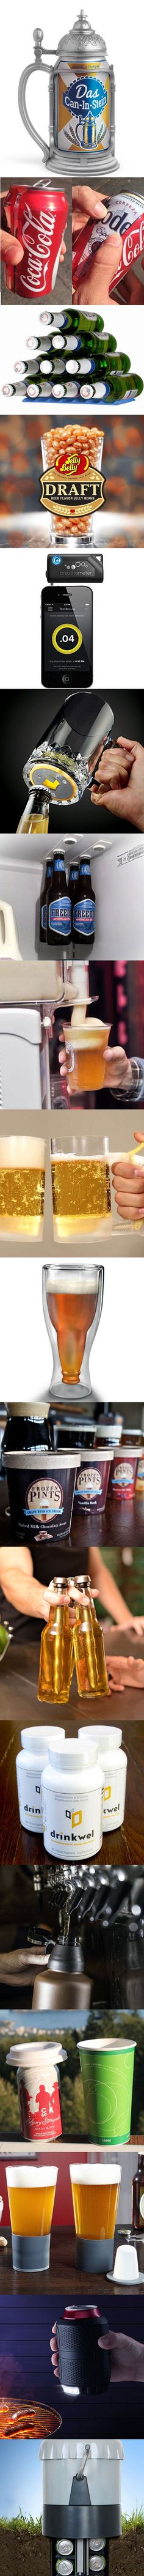 18 Clever Beer Gadgets For The Alcohol Inclined Beer Brewing, Home Brewing, Cheers, Gifts For Beer Lovers, Fun Drinks, Cool Gadgets, Bartender, Craft Beer, Brewery